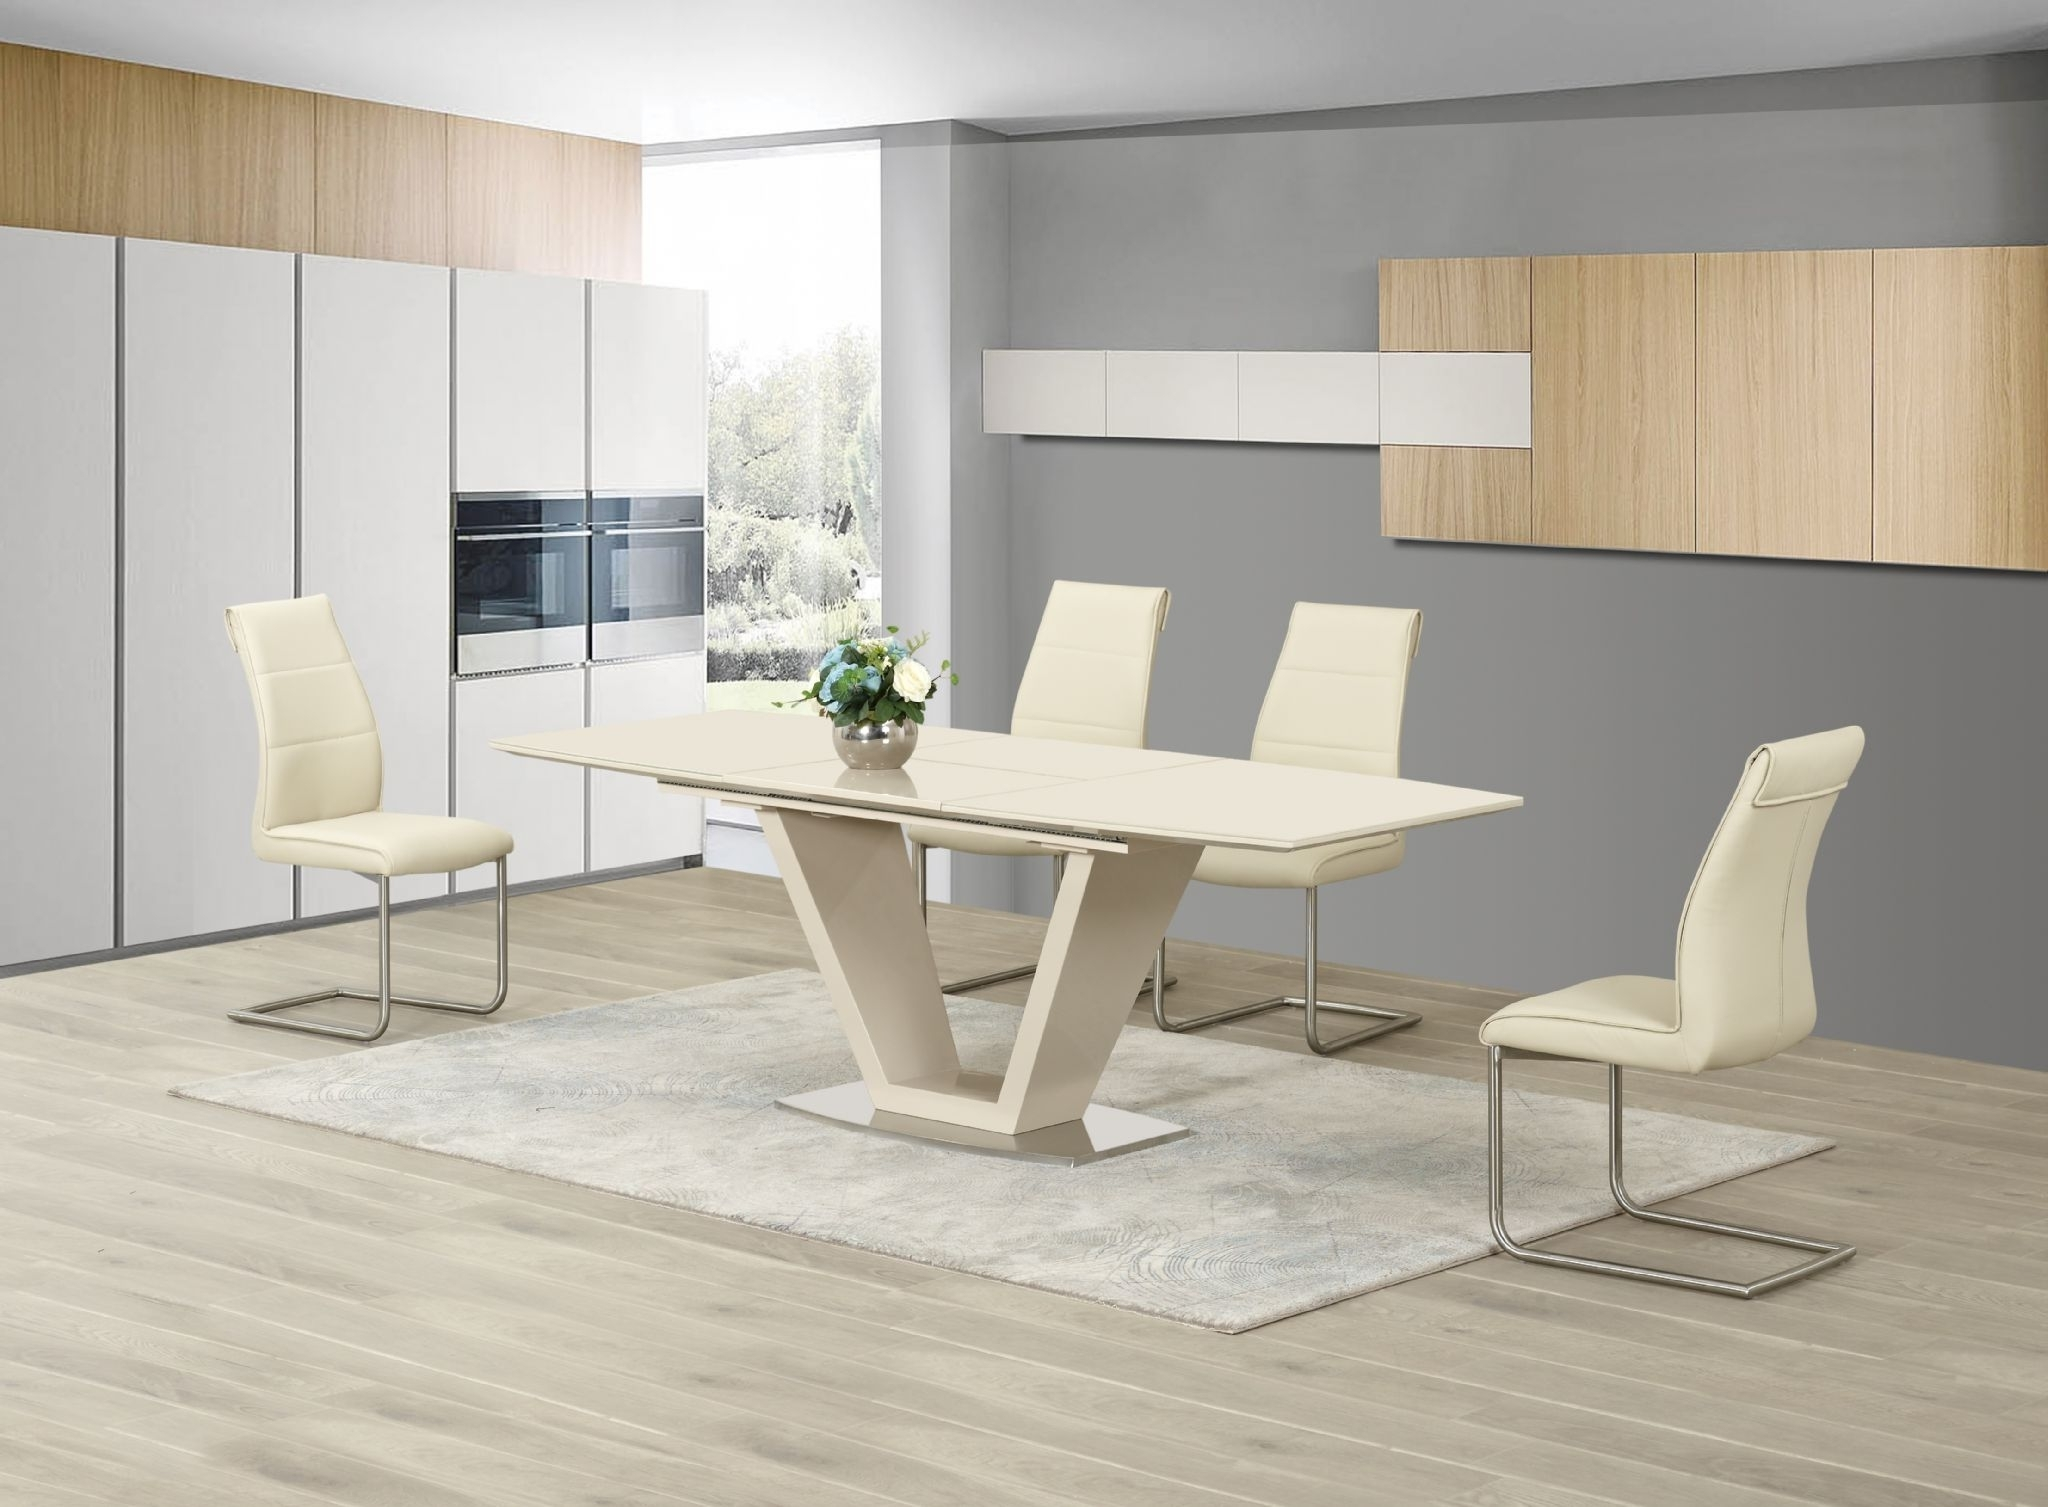 2017 Extending Dining Room Tables And Chairs With Regard To Ga Loriga Cream Gloss Glass Designer Dining Table Extending 160 (View 16 of 25)